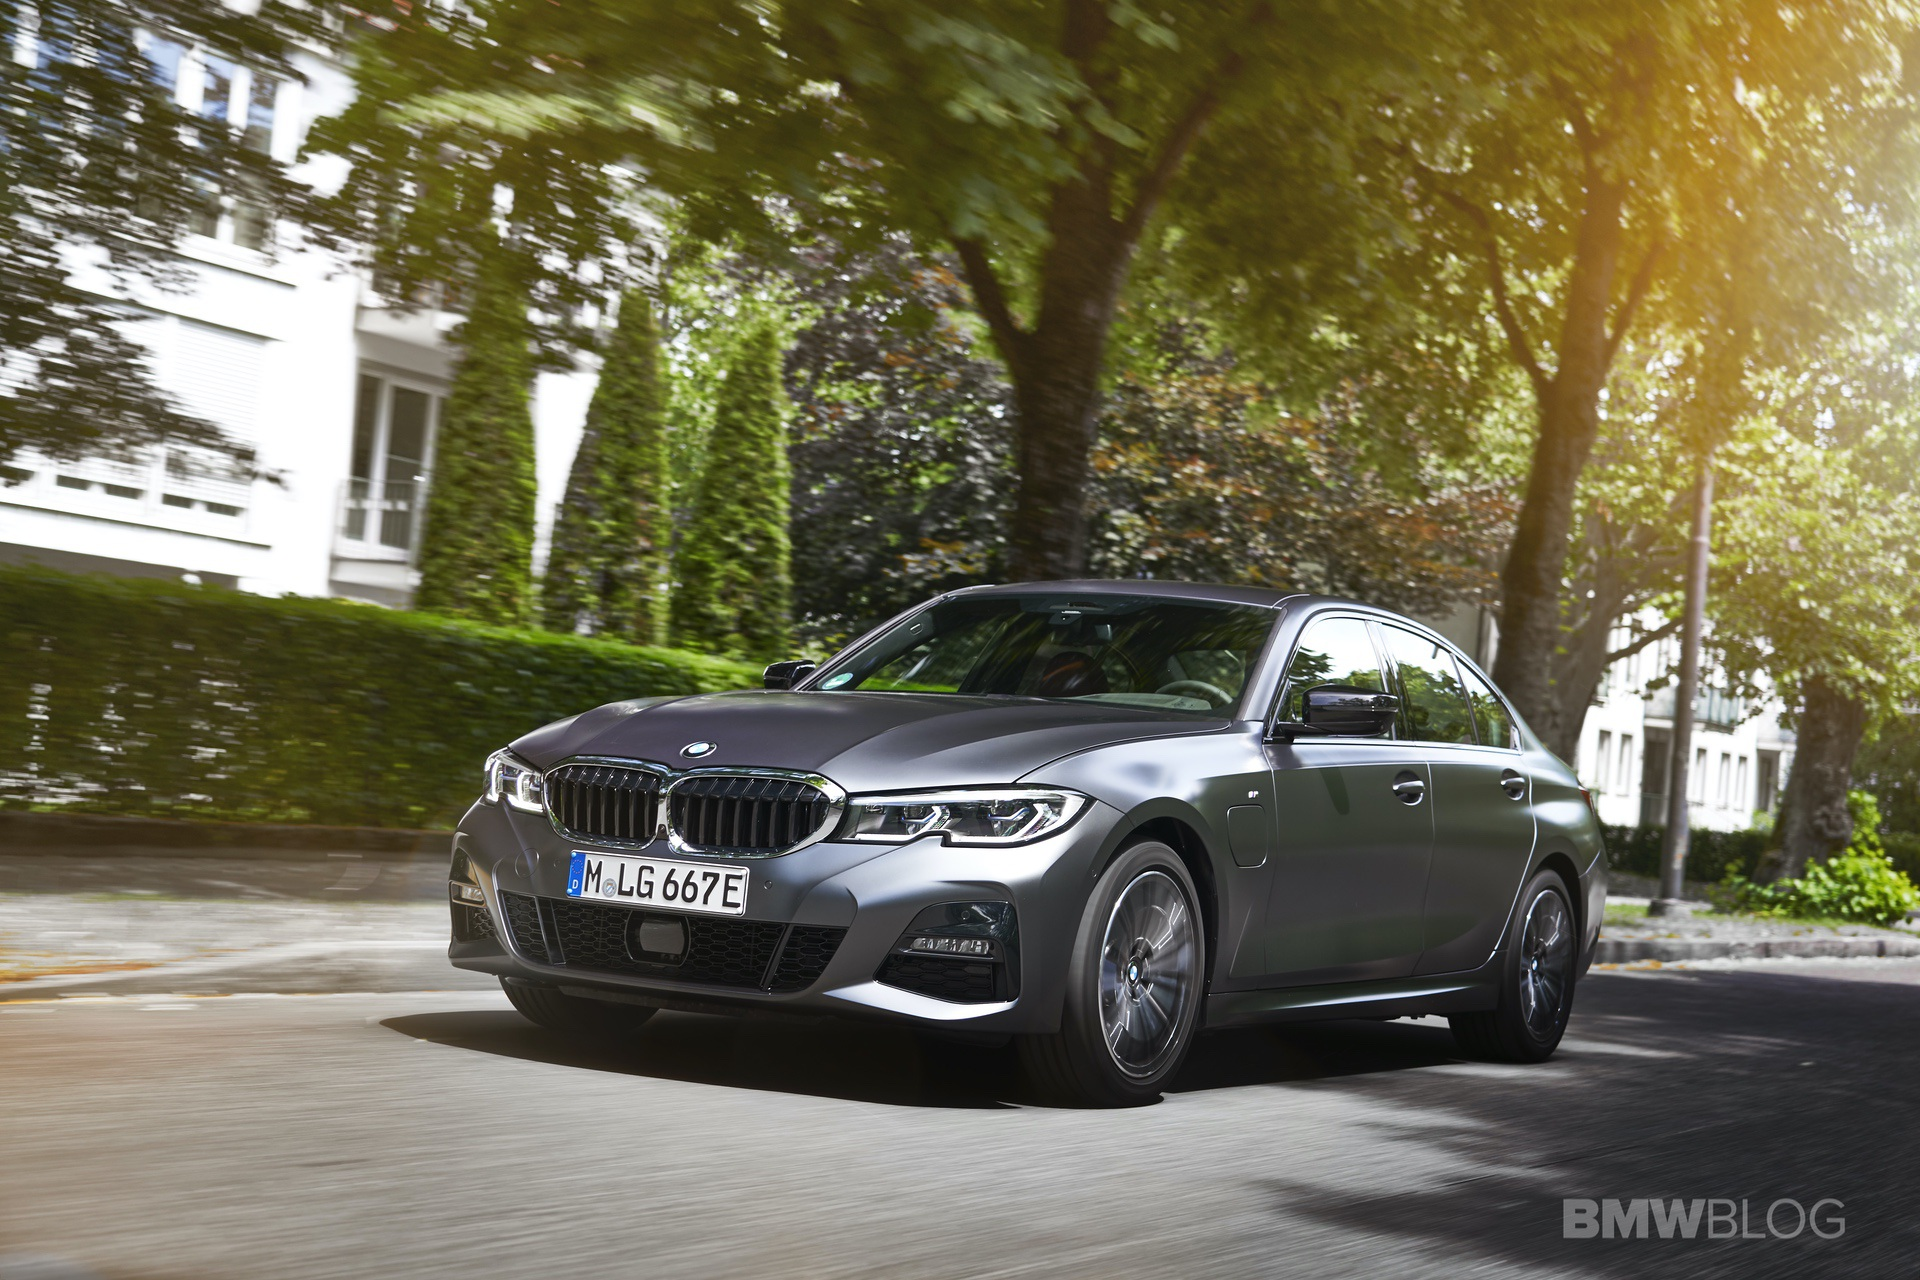 SPIED: Electric BMW 3 Series test prototype looks a bit intriguing